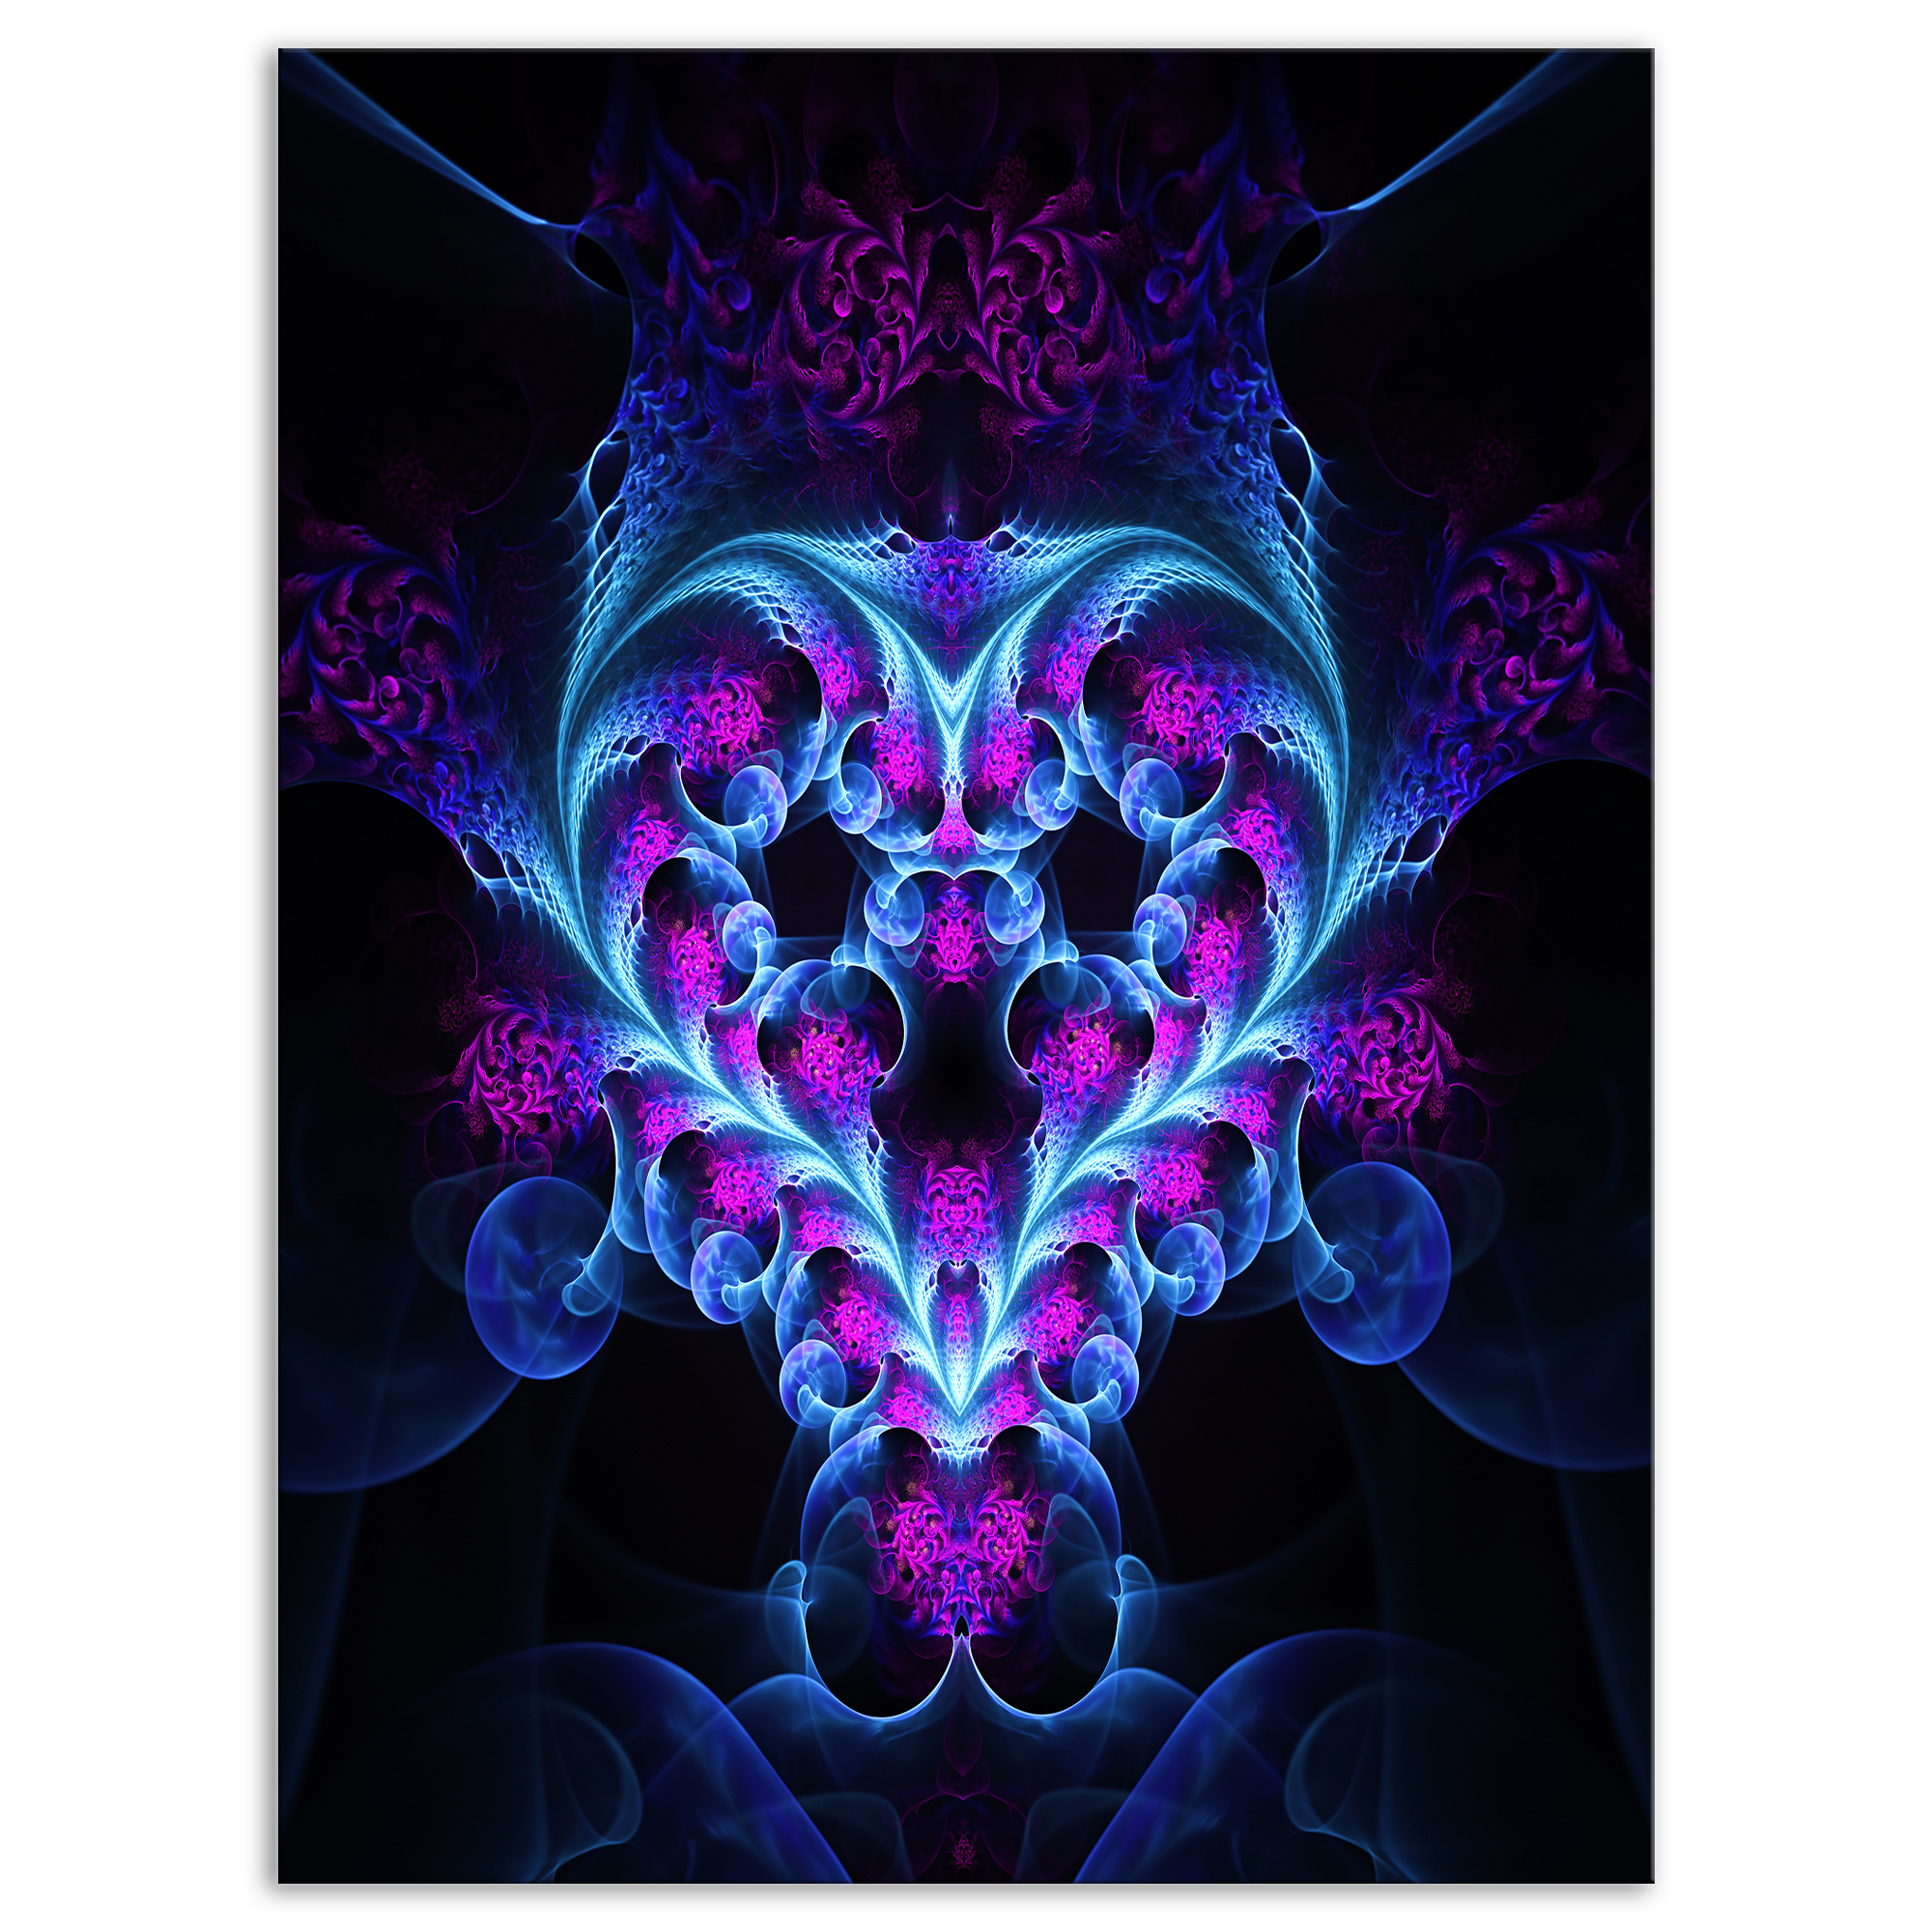 Bright Blue Large Fractal Flower Design - Abstract Art on Canvas - image 1 of 3